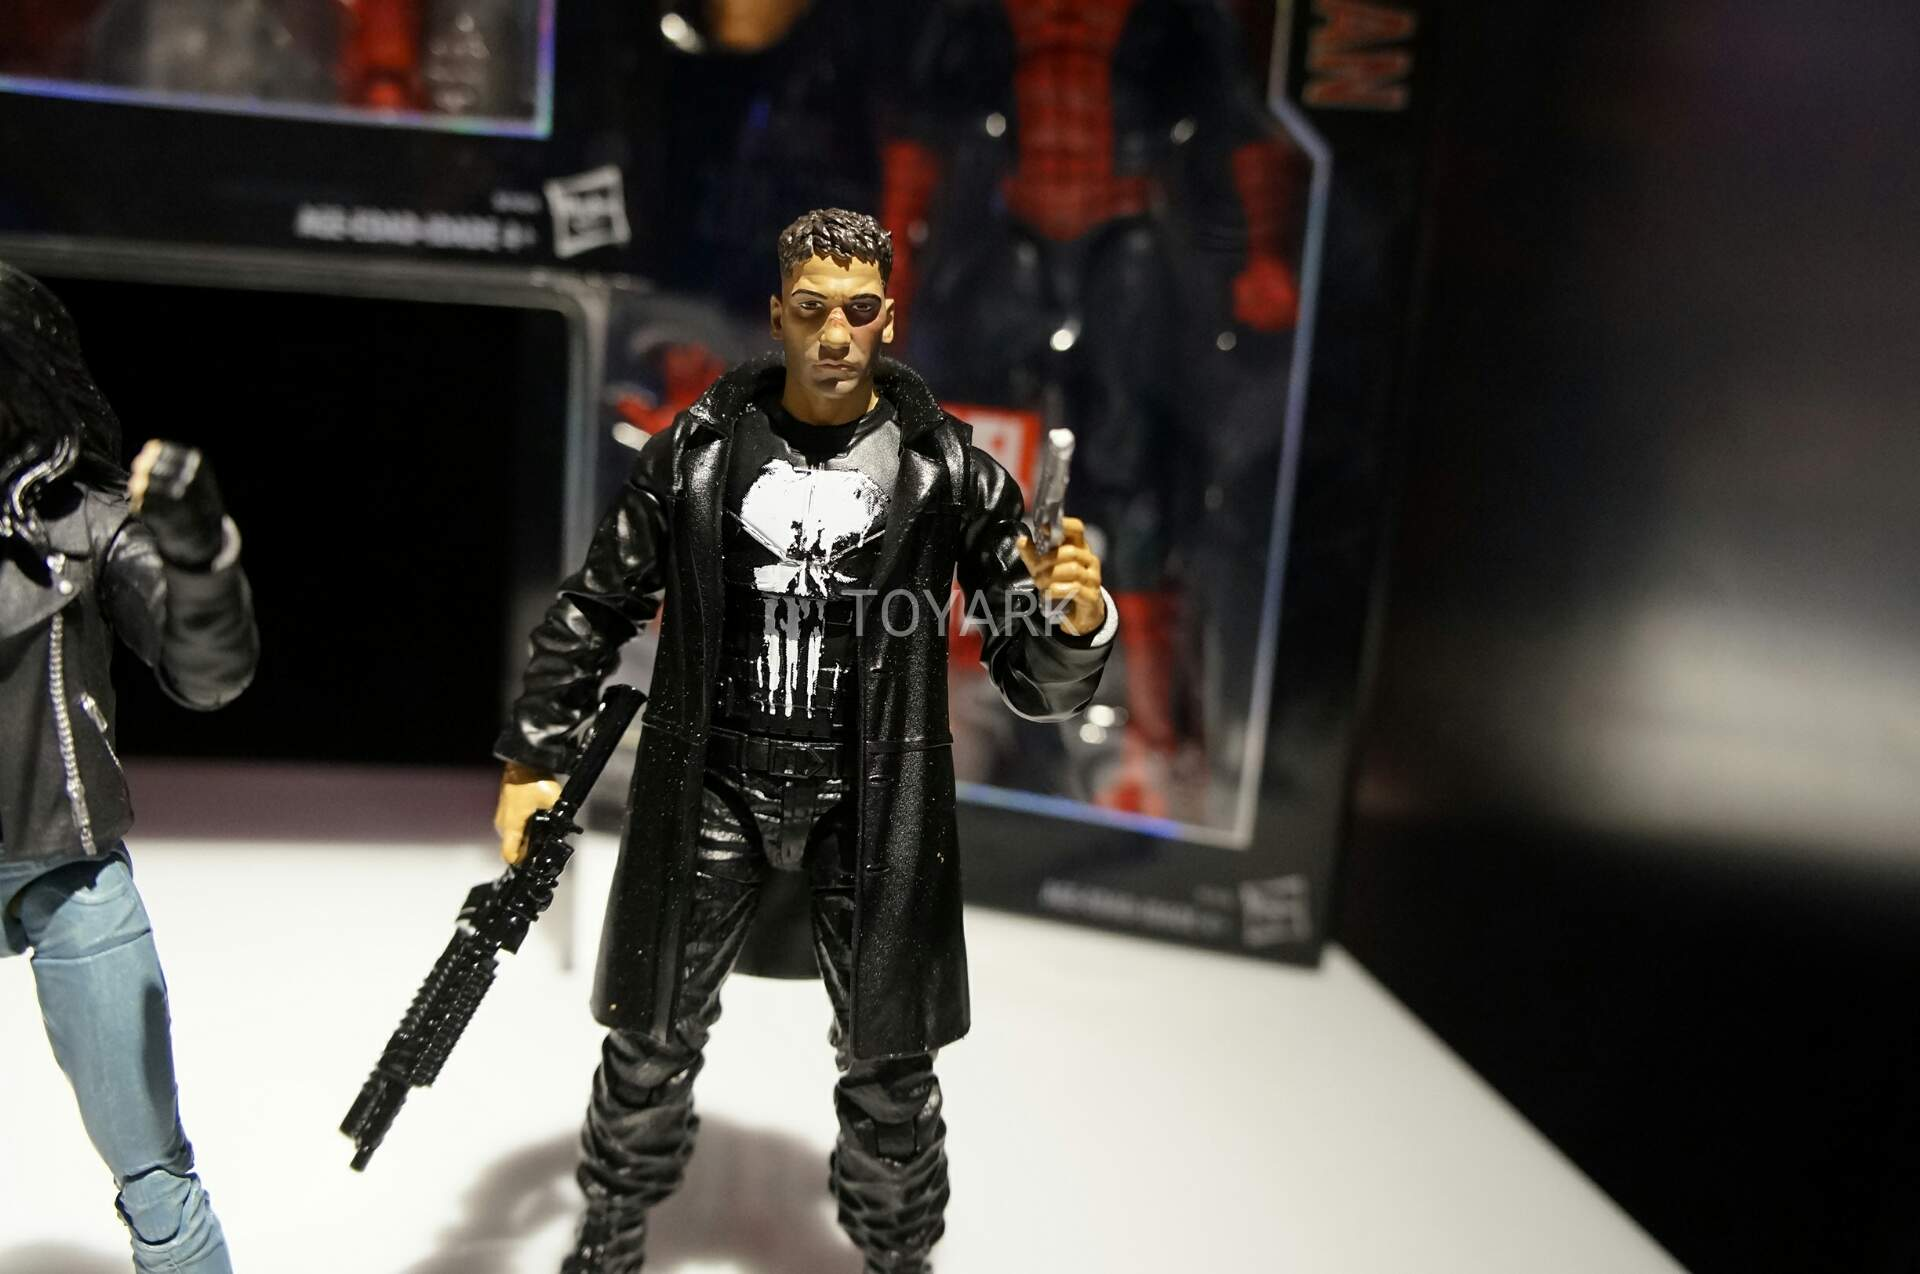 Photo taken from this year's New York Toy Fair held this weekend 2.